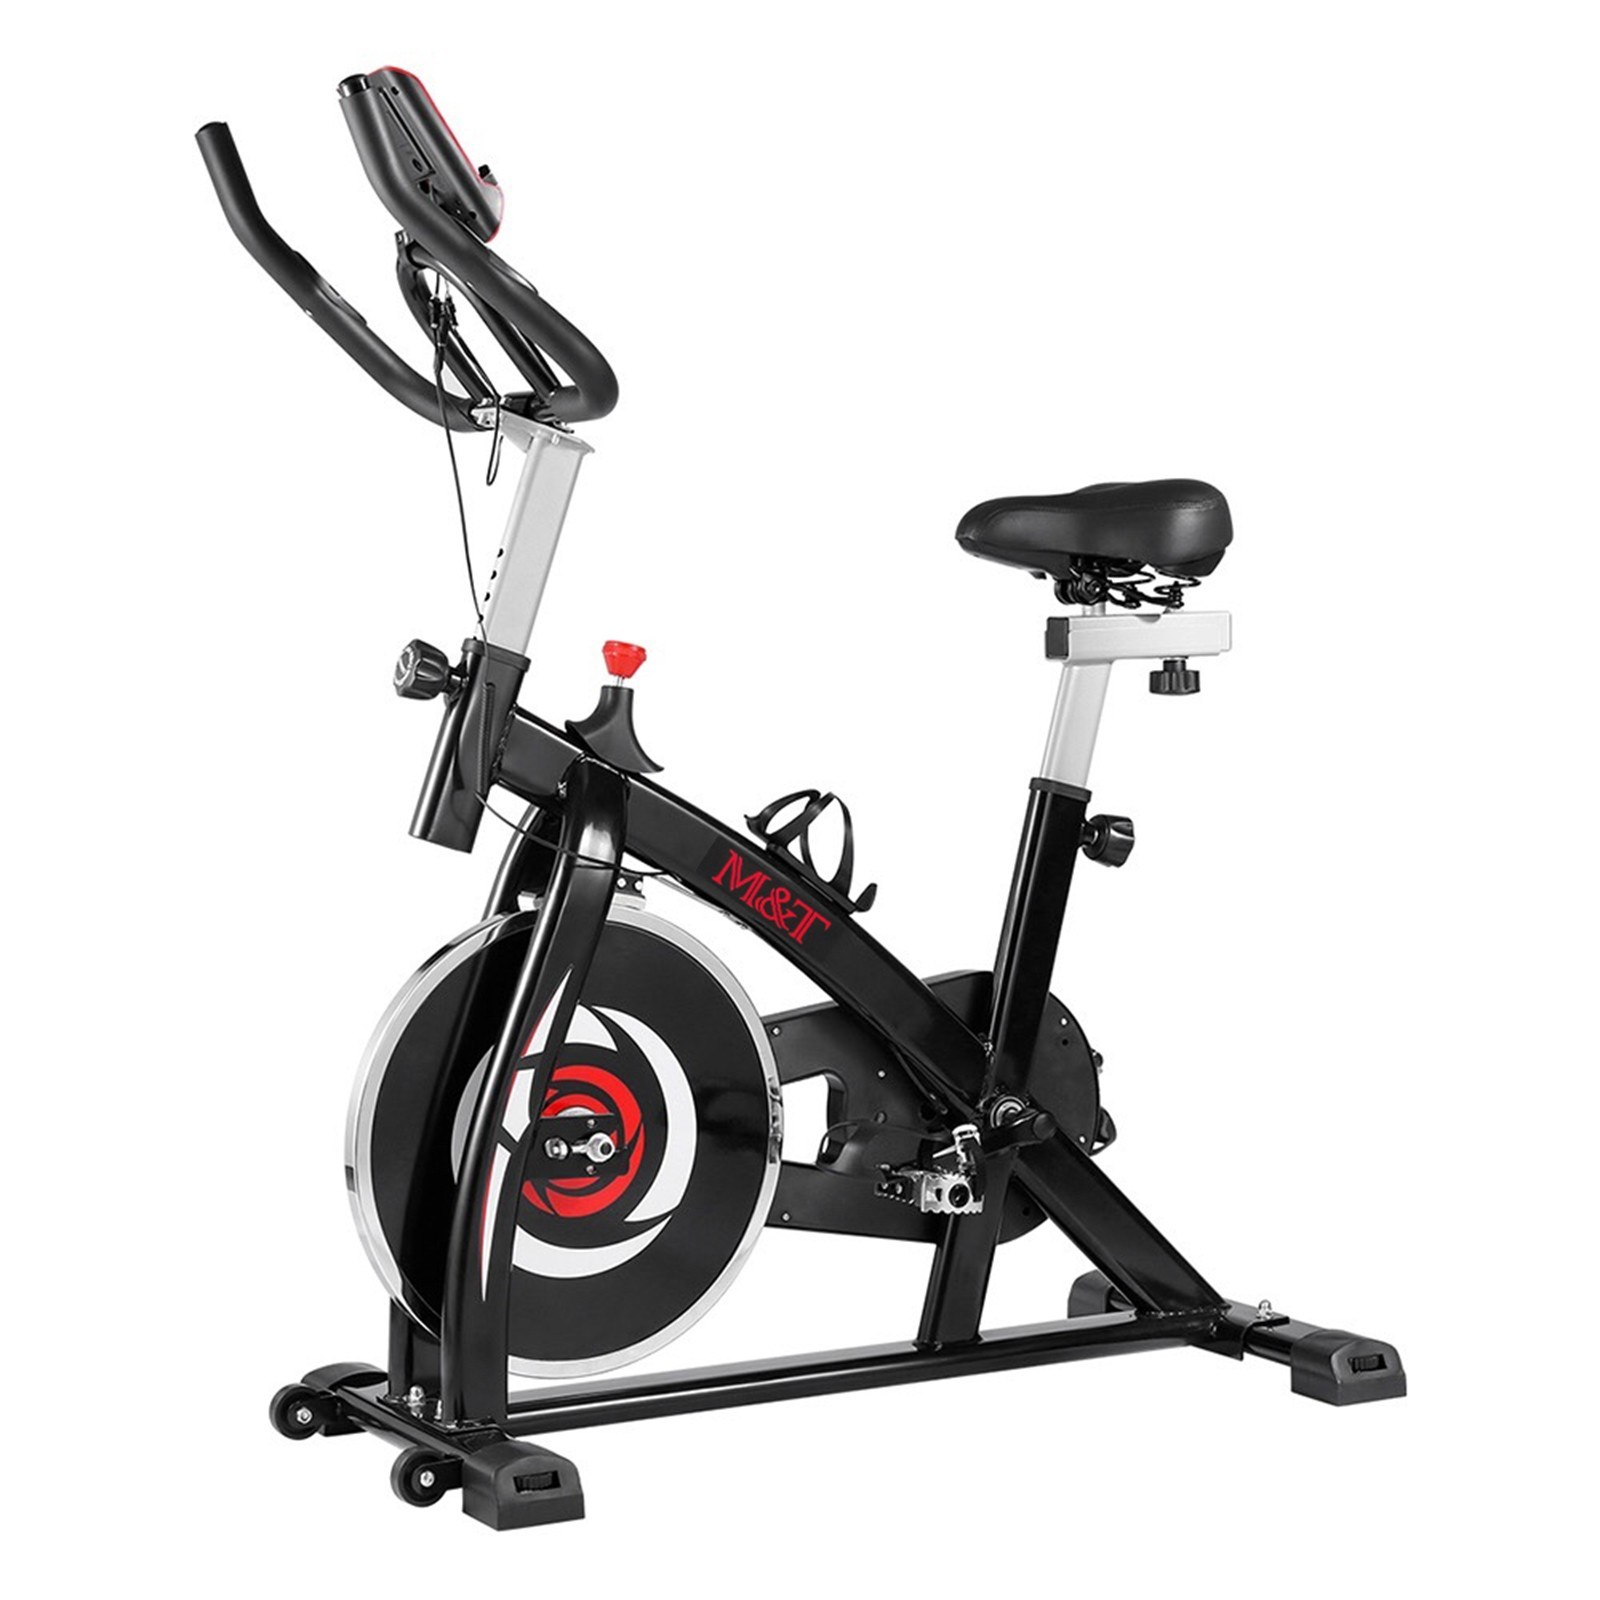 Cafago - 46% OFF M&T YS-S05 Indoor Cycling Stationary Exercise Bike,free shipping+$196.15